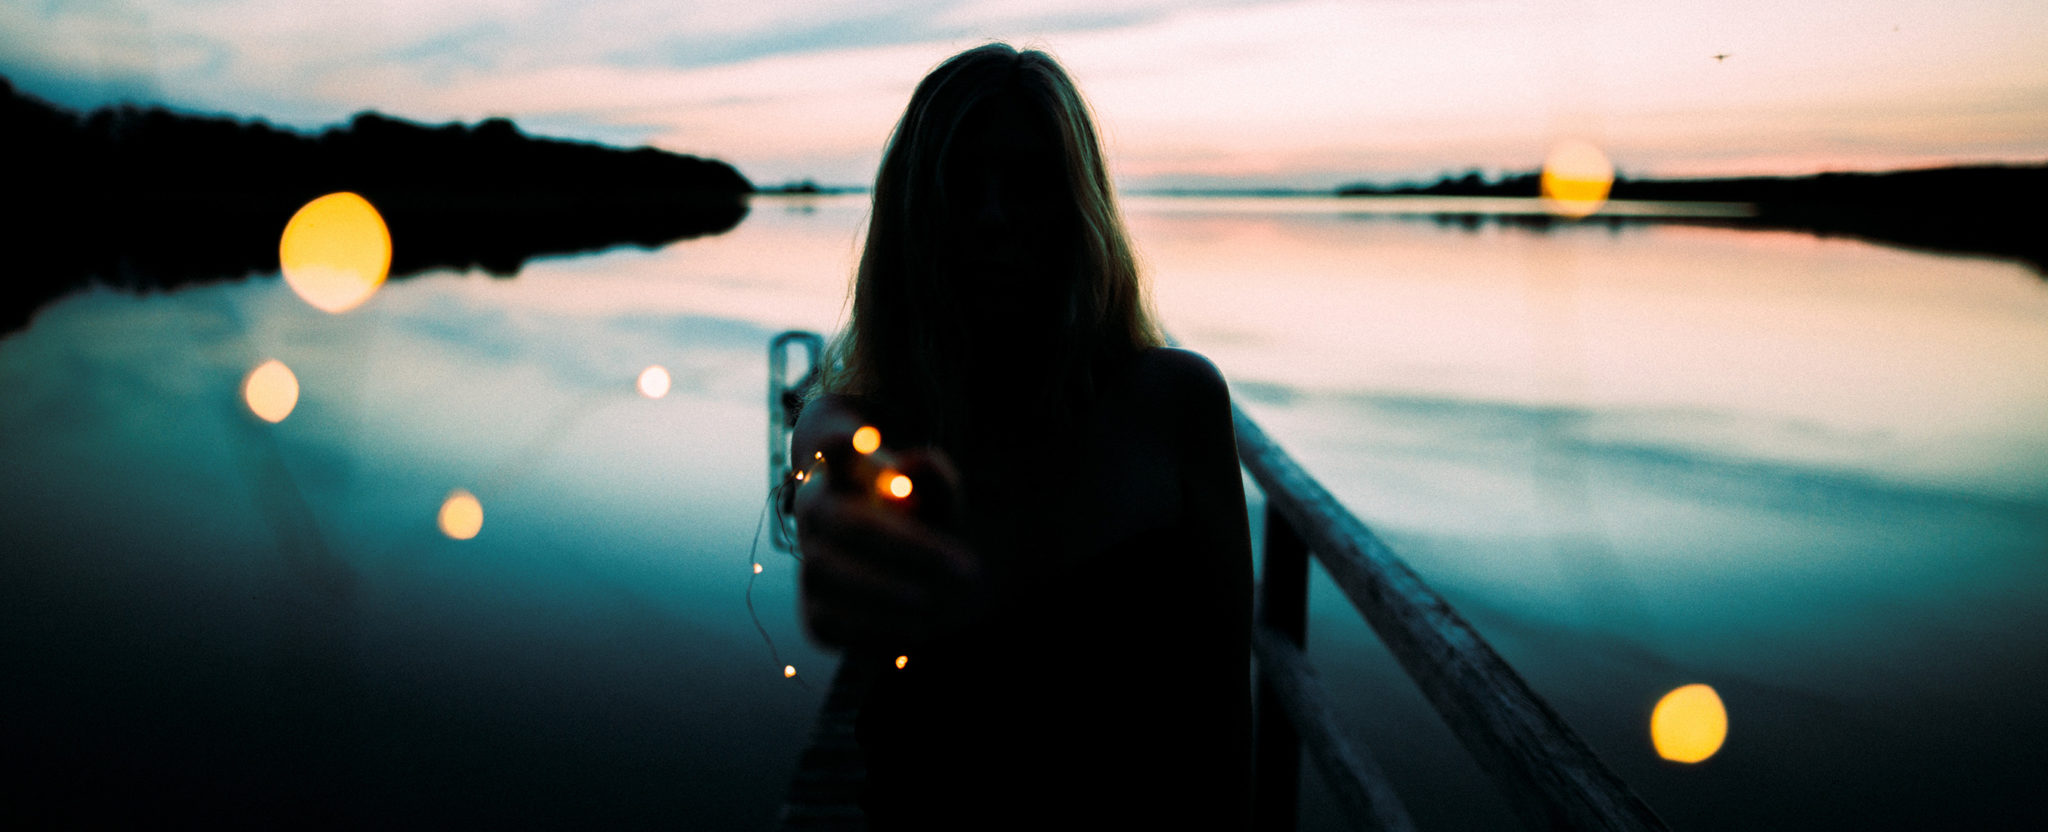 Silhouette of a girl sitting in a boat